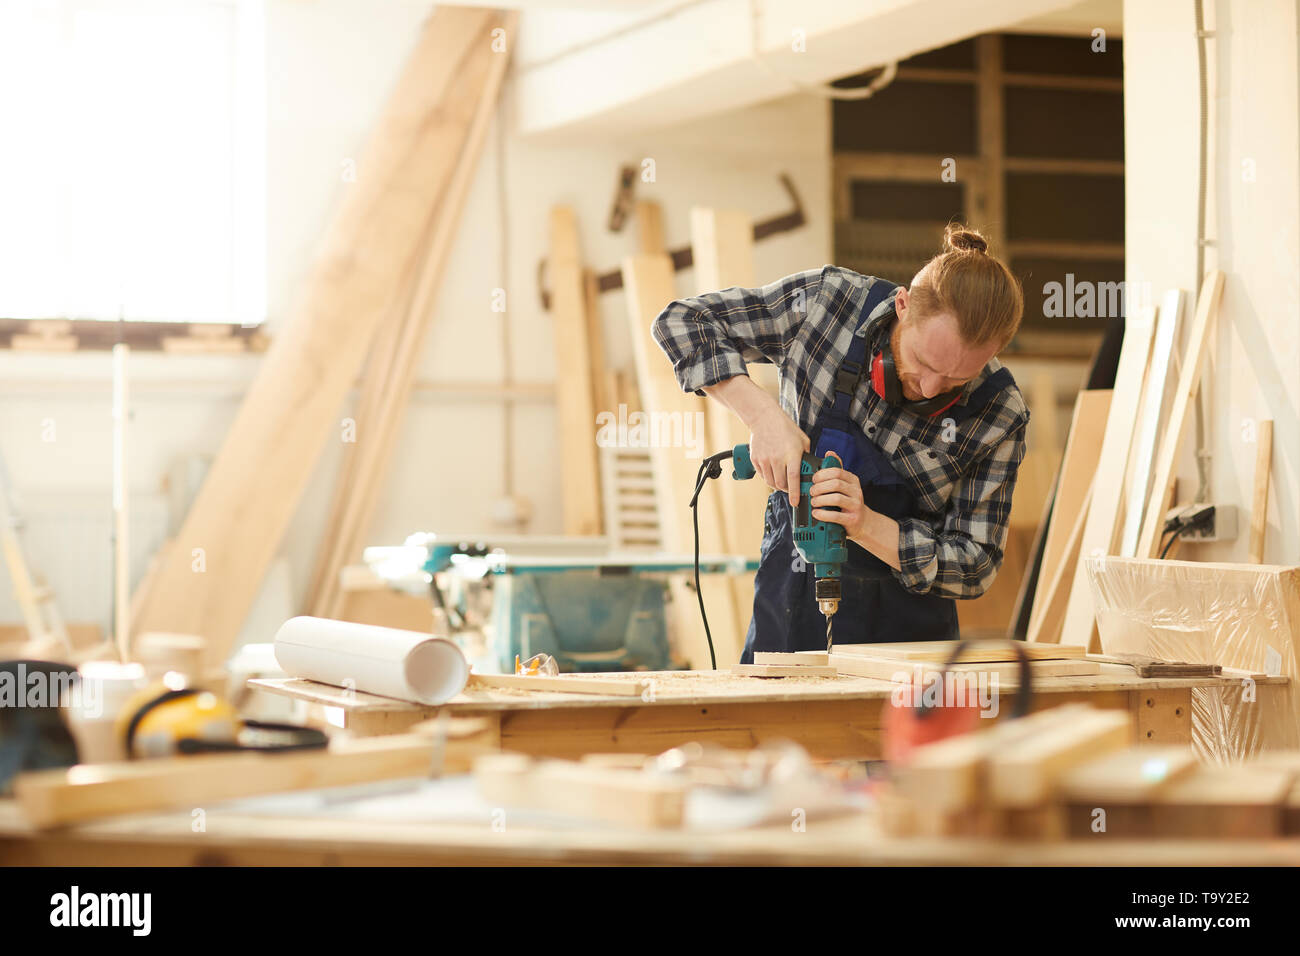 Waist up portrait of red haired carpenter working in joinery lit by sunlight, copy space - Stock Image